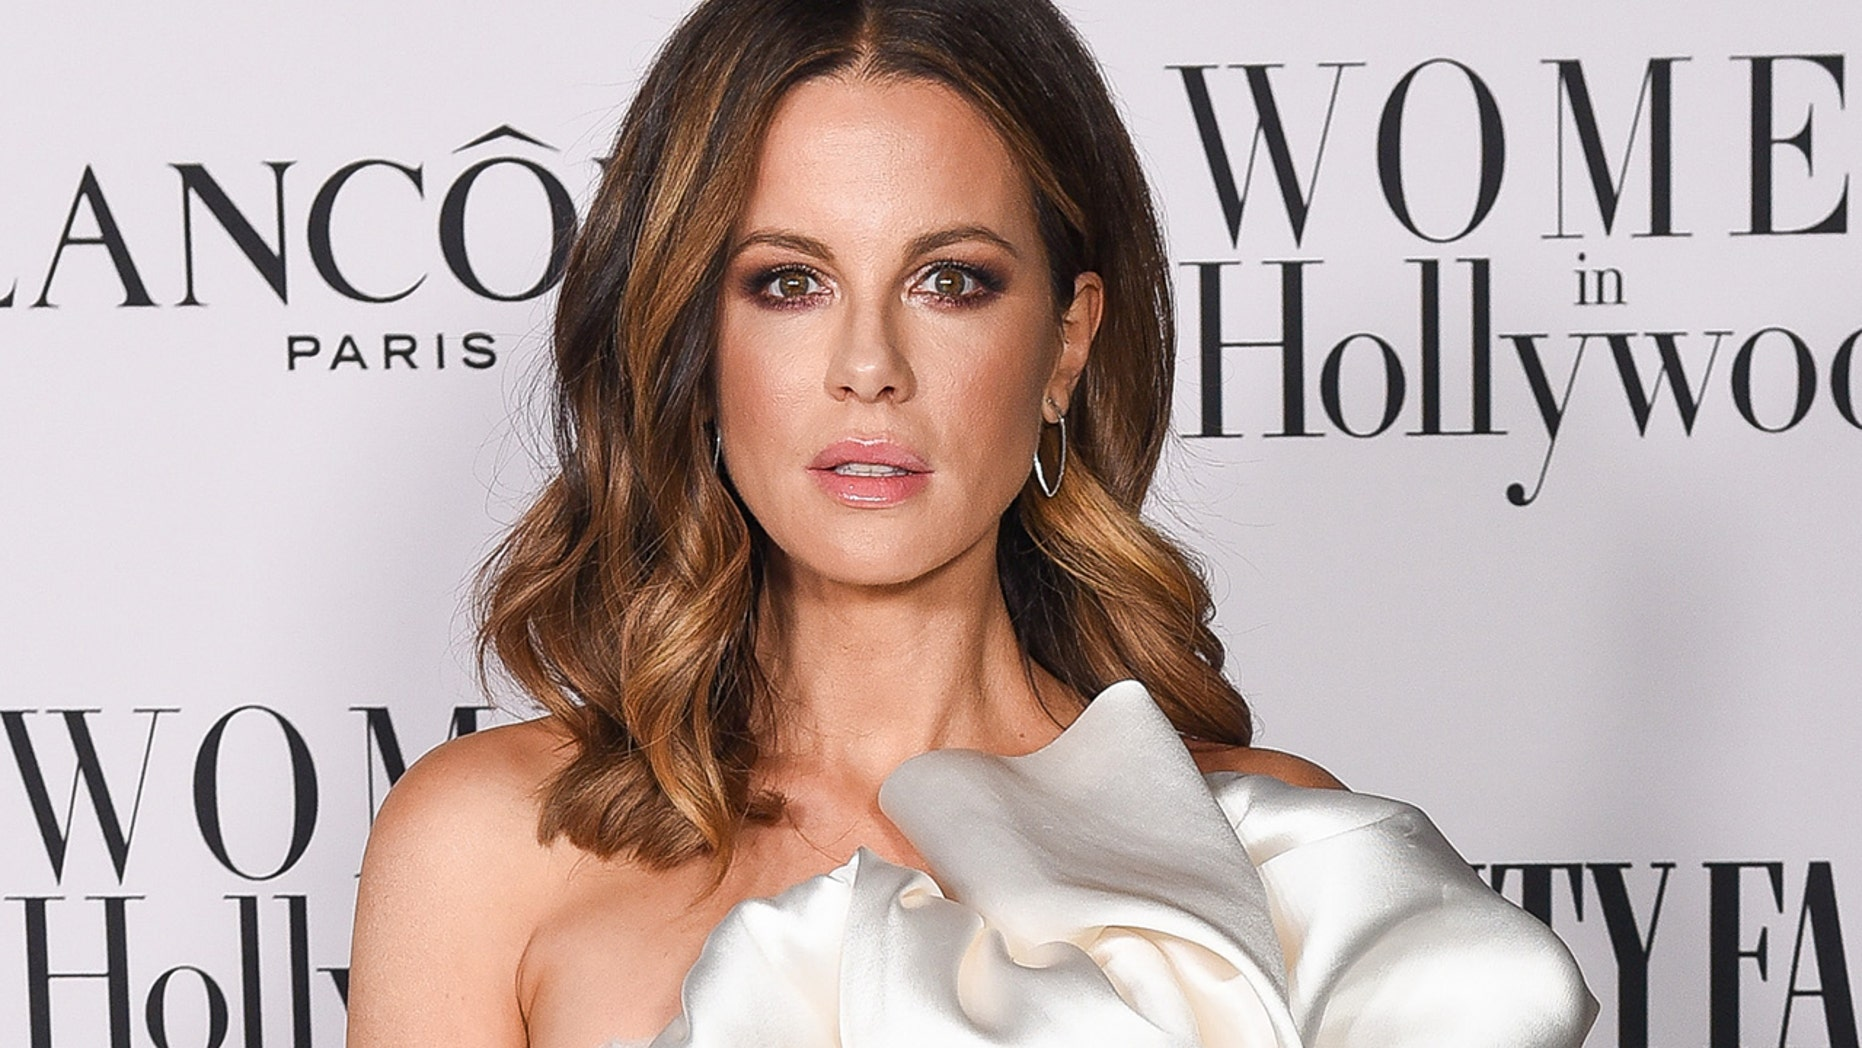 Kate Beckinsale, the Jolt actress reveals she hasn't seen her daughter in 2 years due to the coronavirus pandemic